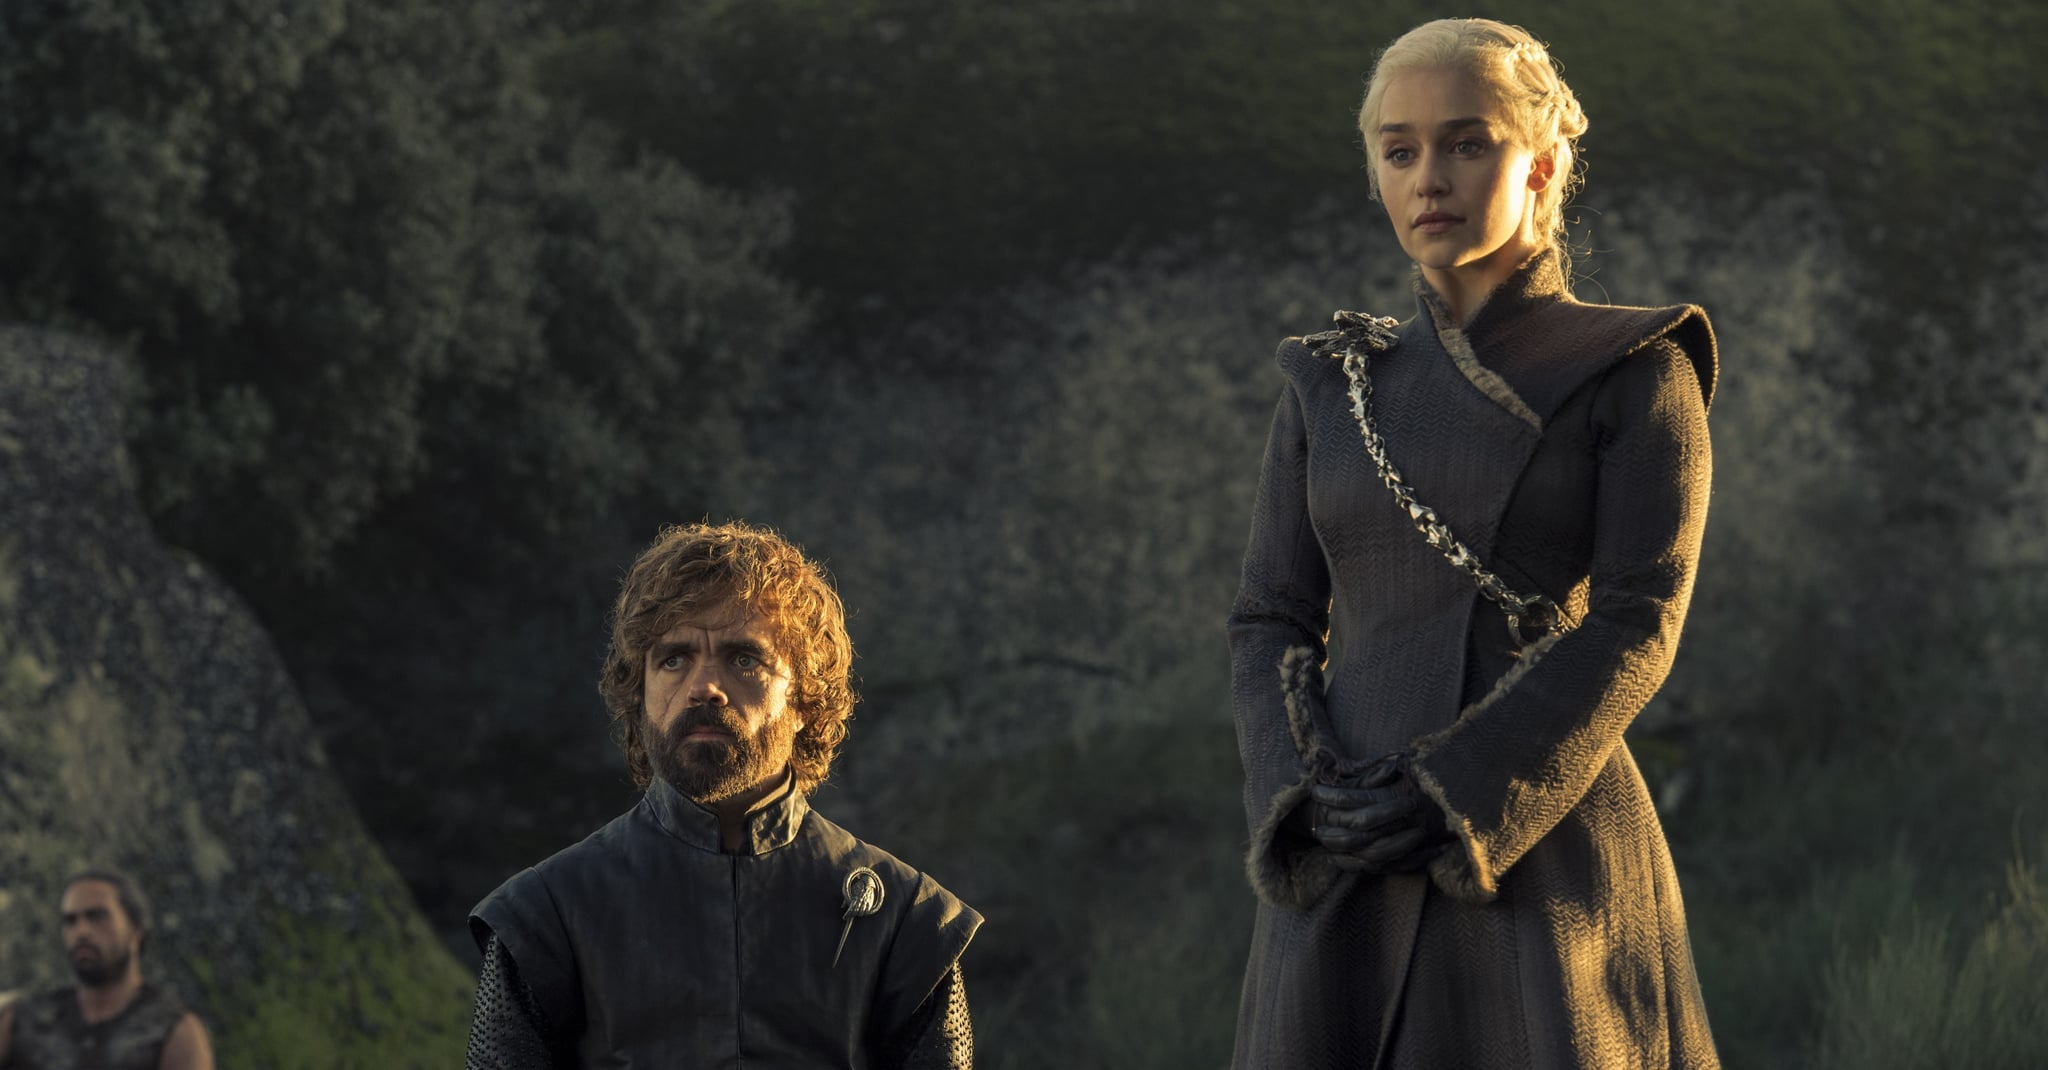 Will Varys Betray Daenerys according to latest Game of Thrones Theory?